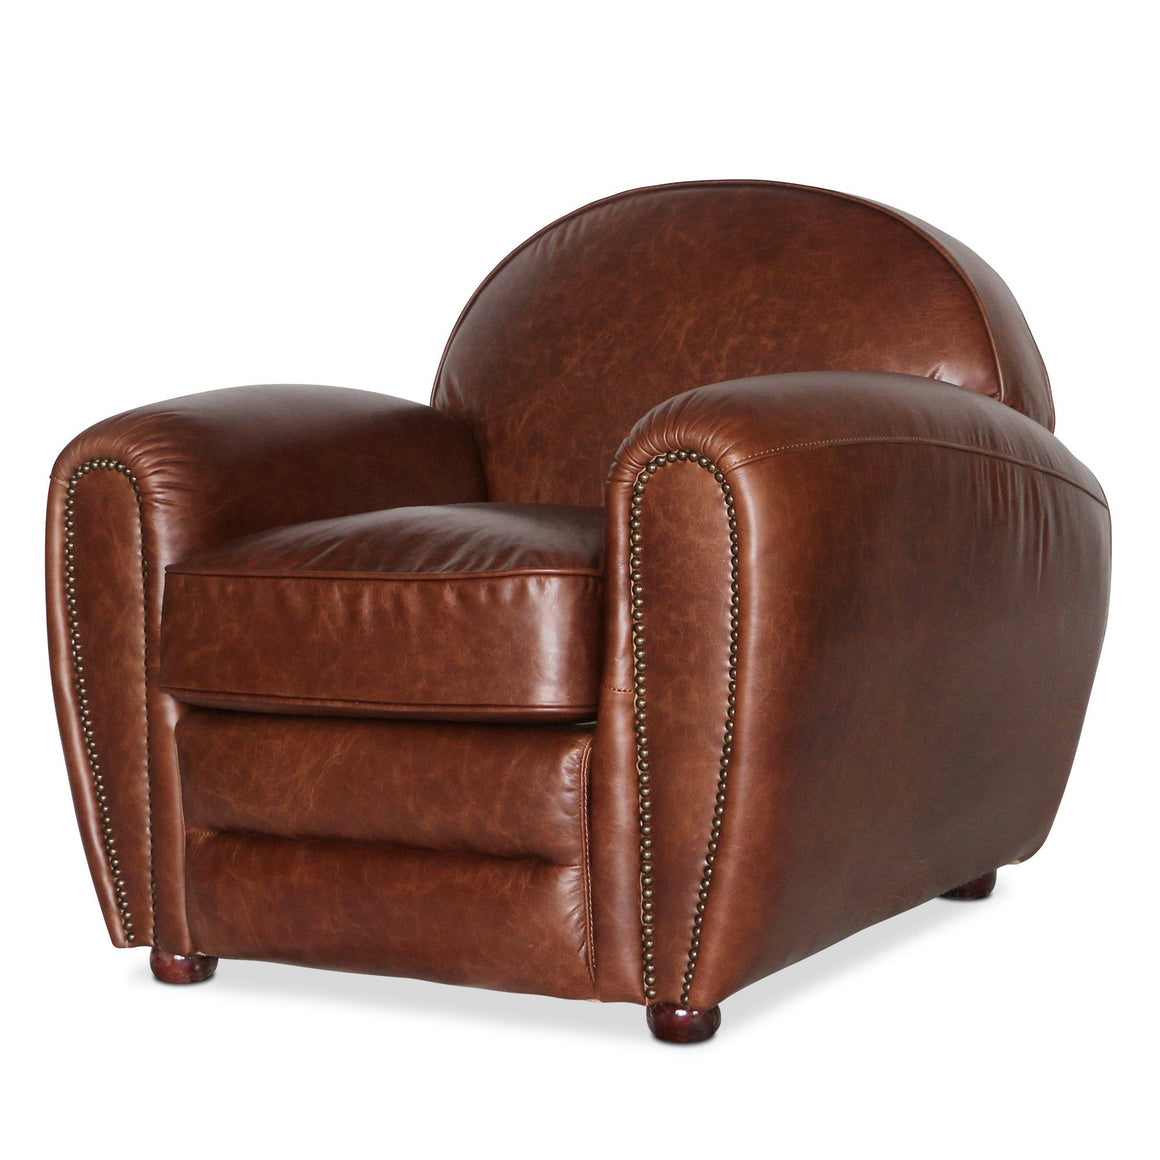 Genuine Brown Leather Club Chair - Cigar Lounge Armchair-Rustic Deco Incorporated